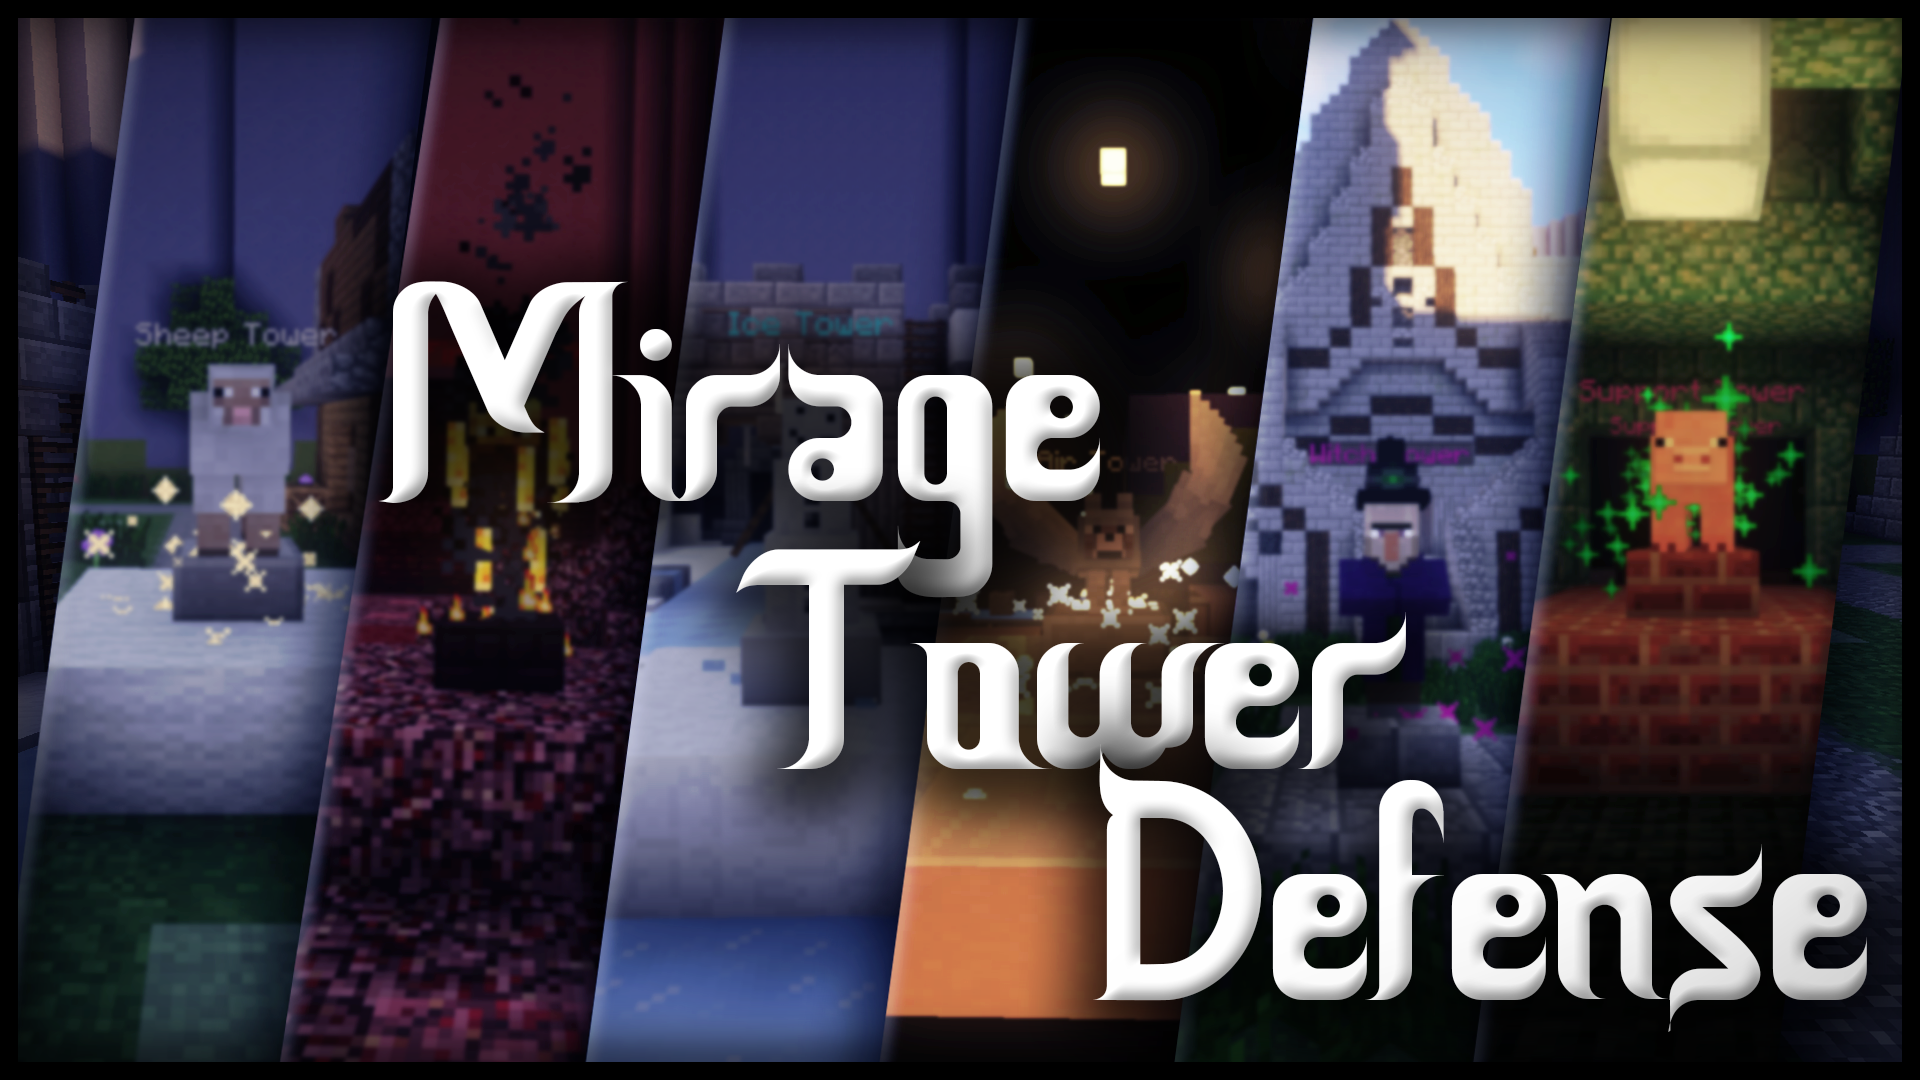 Mirage Tower Defense